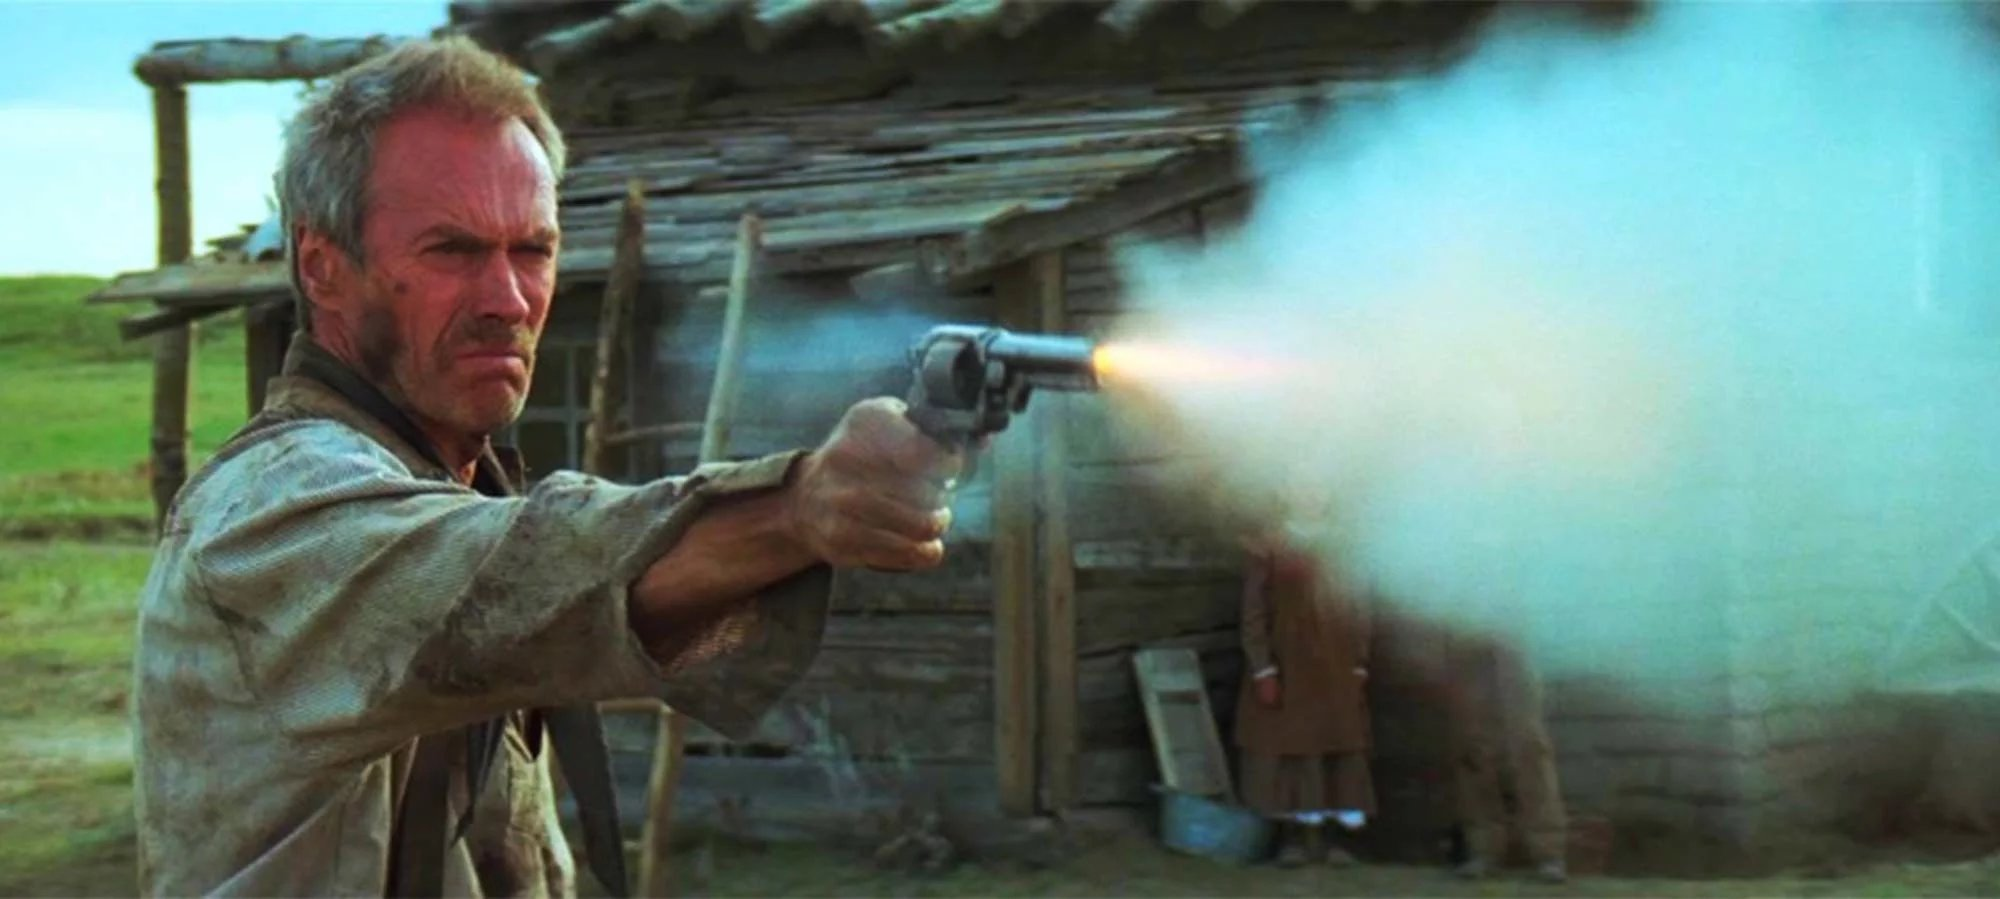 clint-eastwood-unforgiven-guns 2.jpg